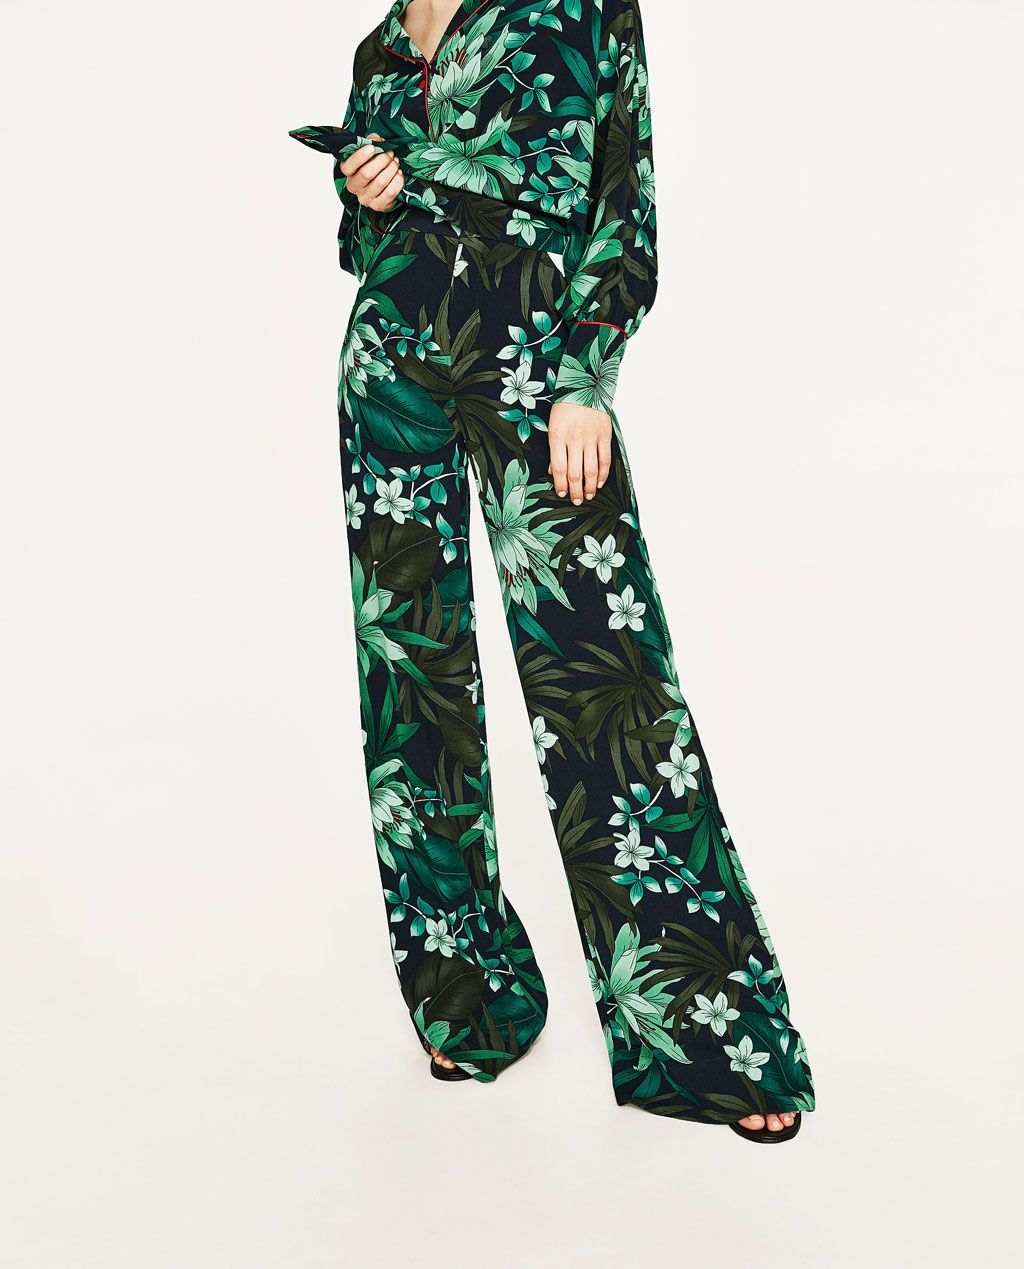 printed palazzo trousers-wide-trousers-woman | zara united